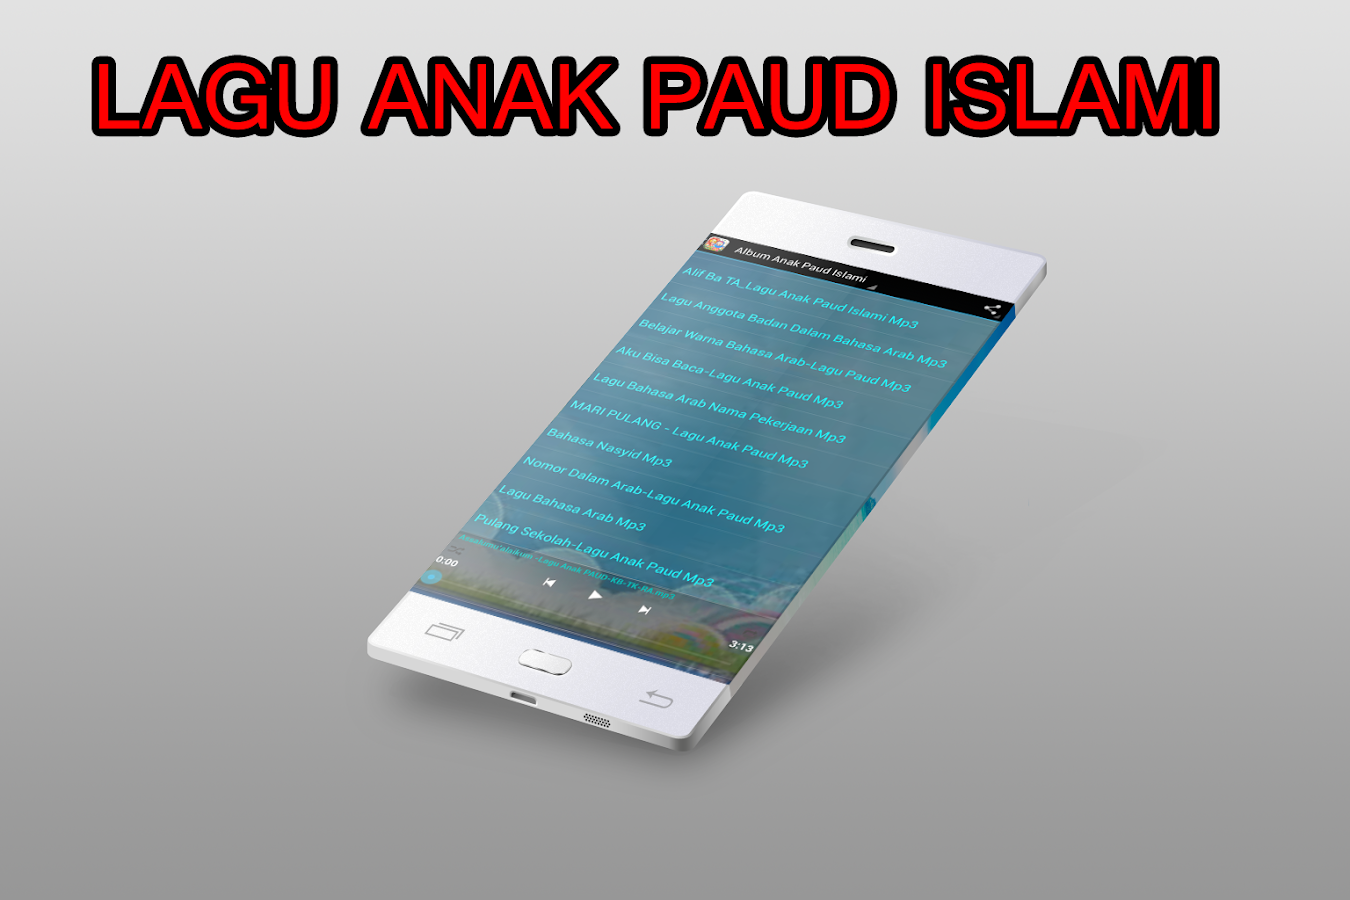 Lagu Anak Paud Islami Android Apps On Google Play